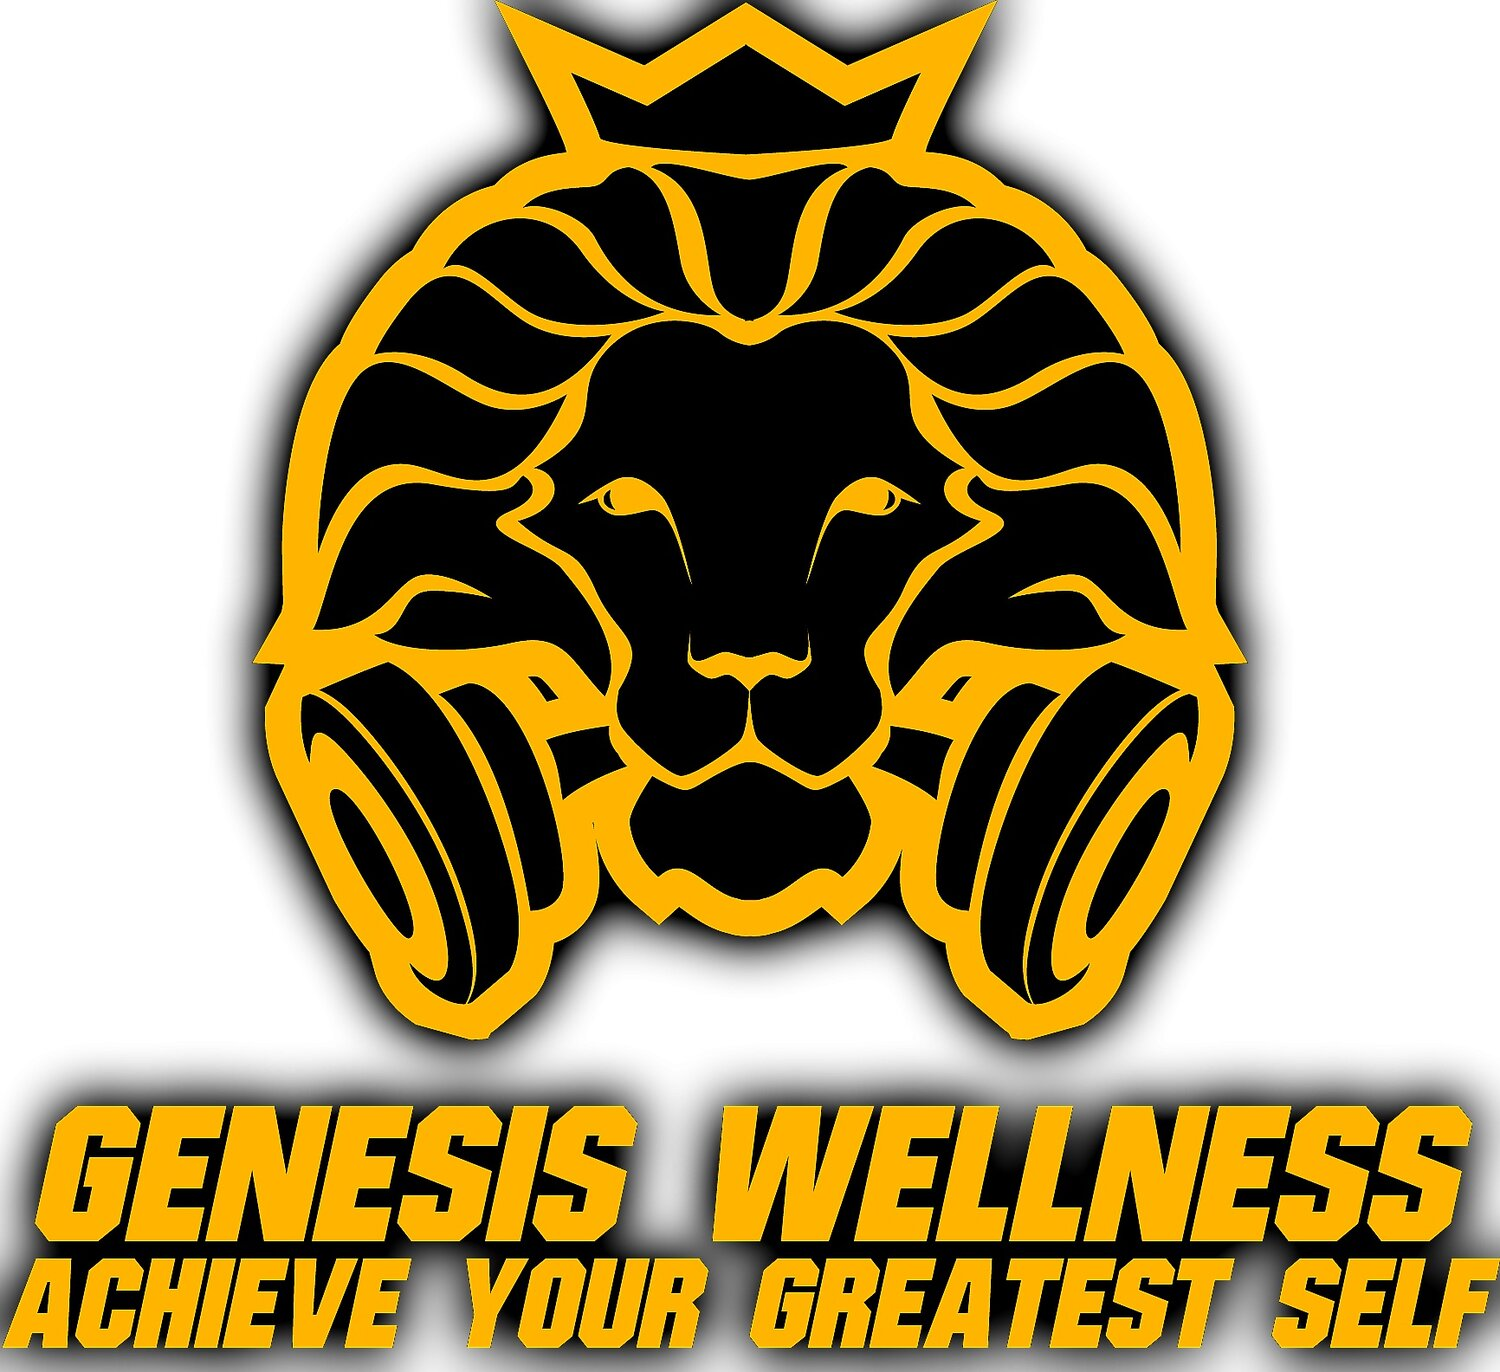 Genesis wellness group LLC